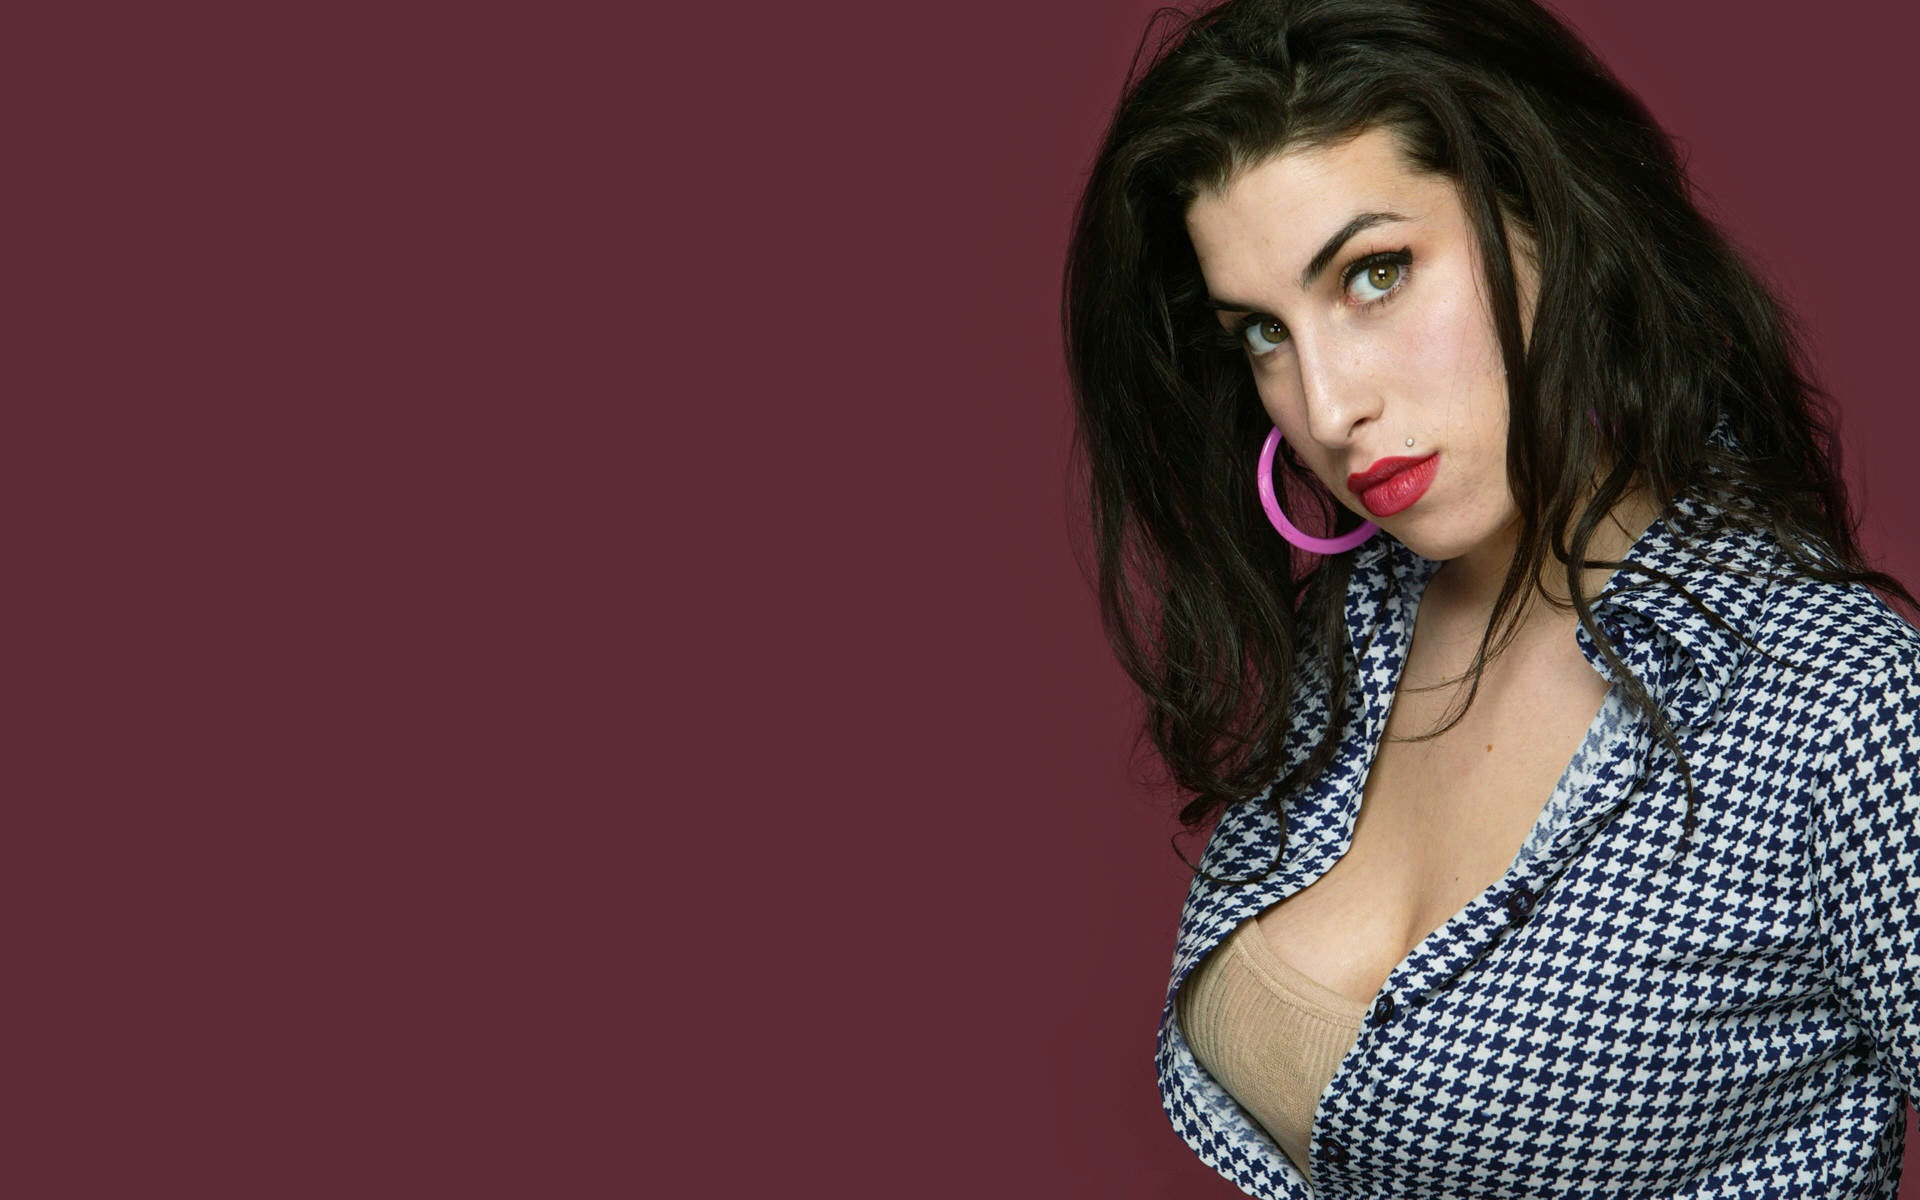 Amy Winehouse Wallpapers HD - wallpaper.wiki